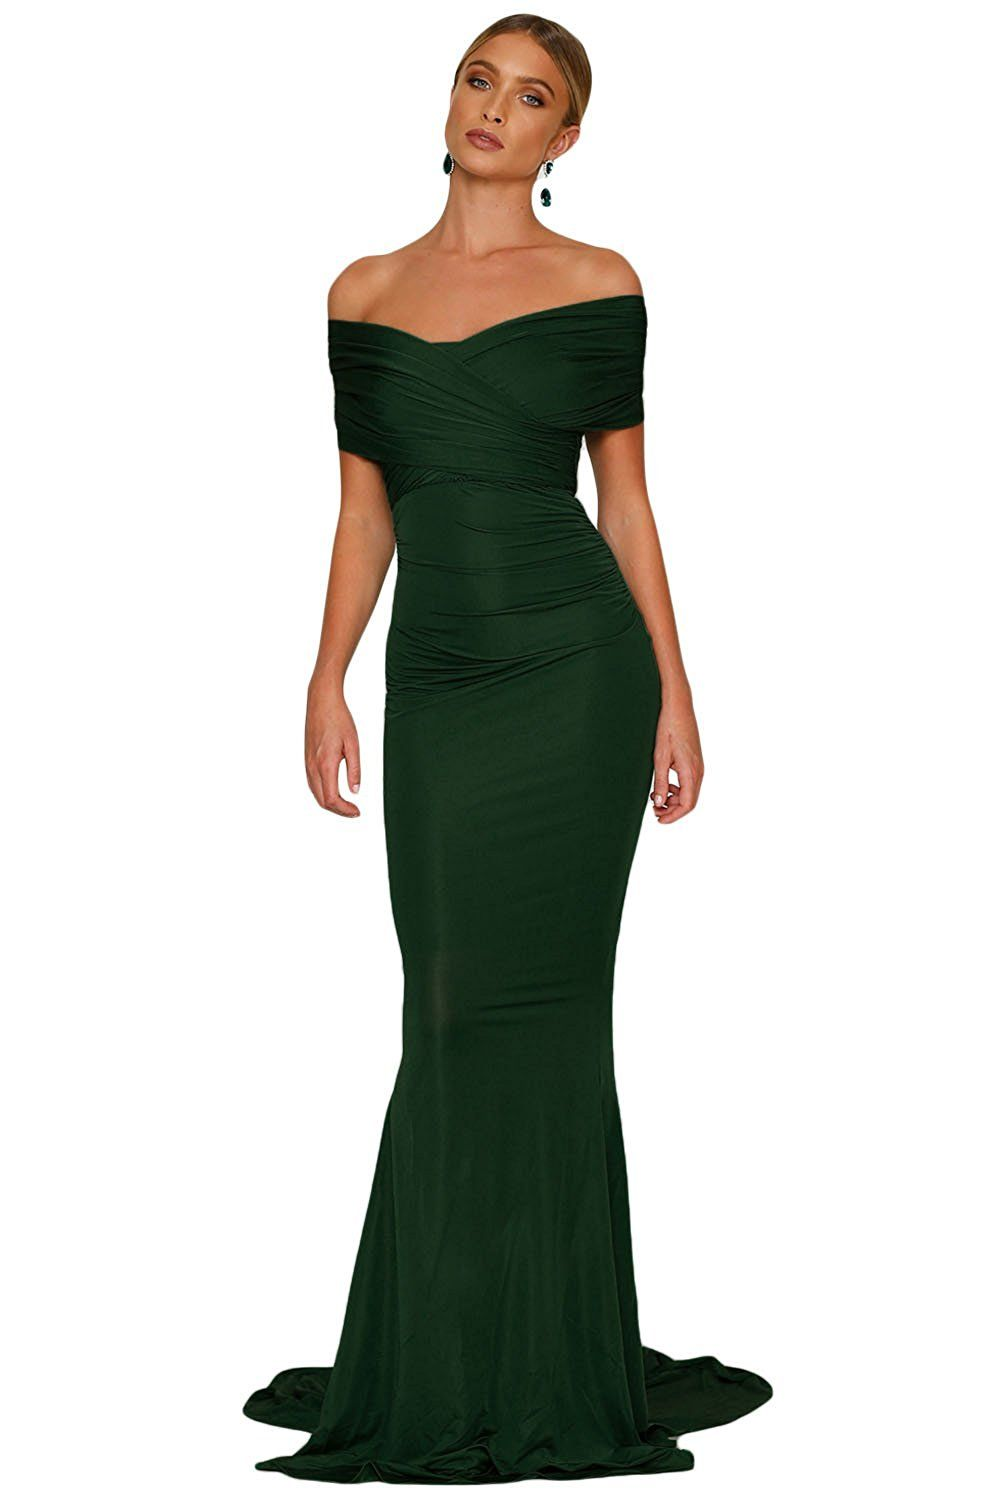 8d3c2576ff Elisan Woman Sexy Off-shoulder Mermaid Wedding Evening Party Gown  Sweetheart Long Formal Dresses at Amazon Women s Clothing store